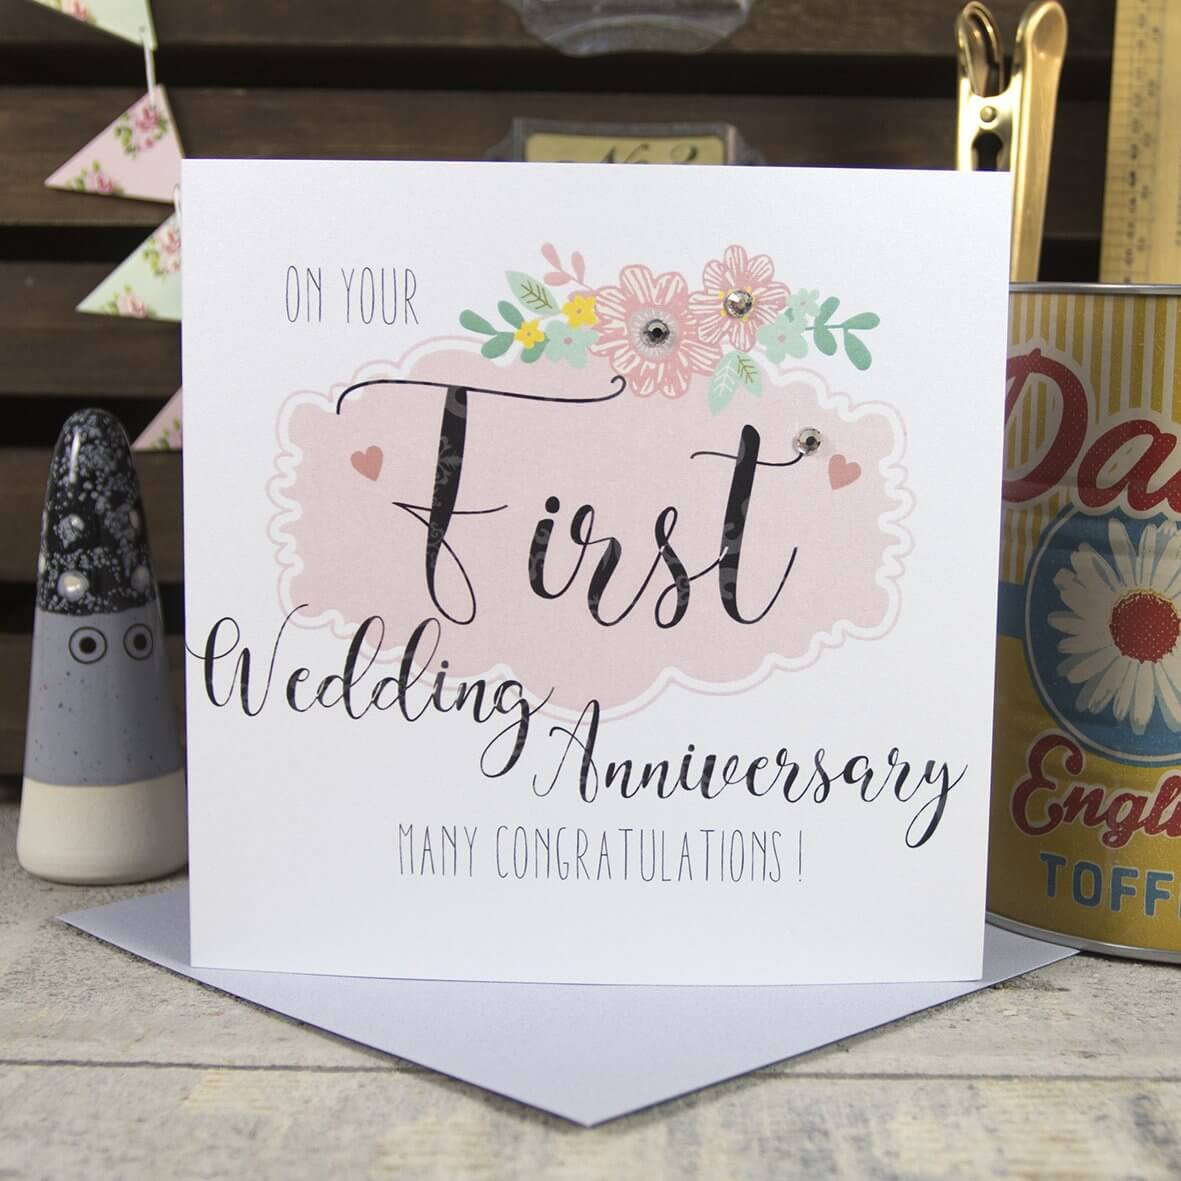 On your First Wedding Anniversary Many Congratulations